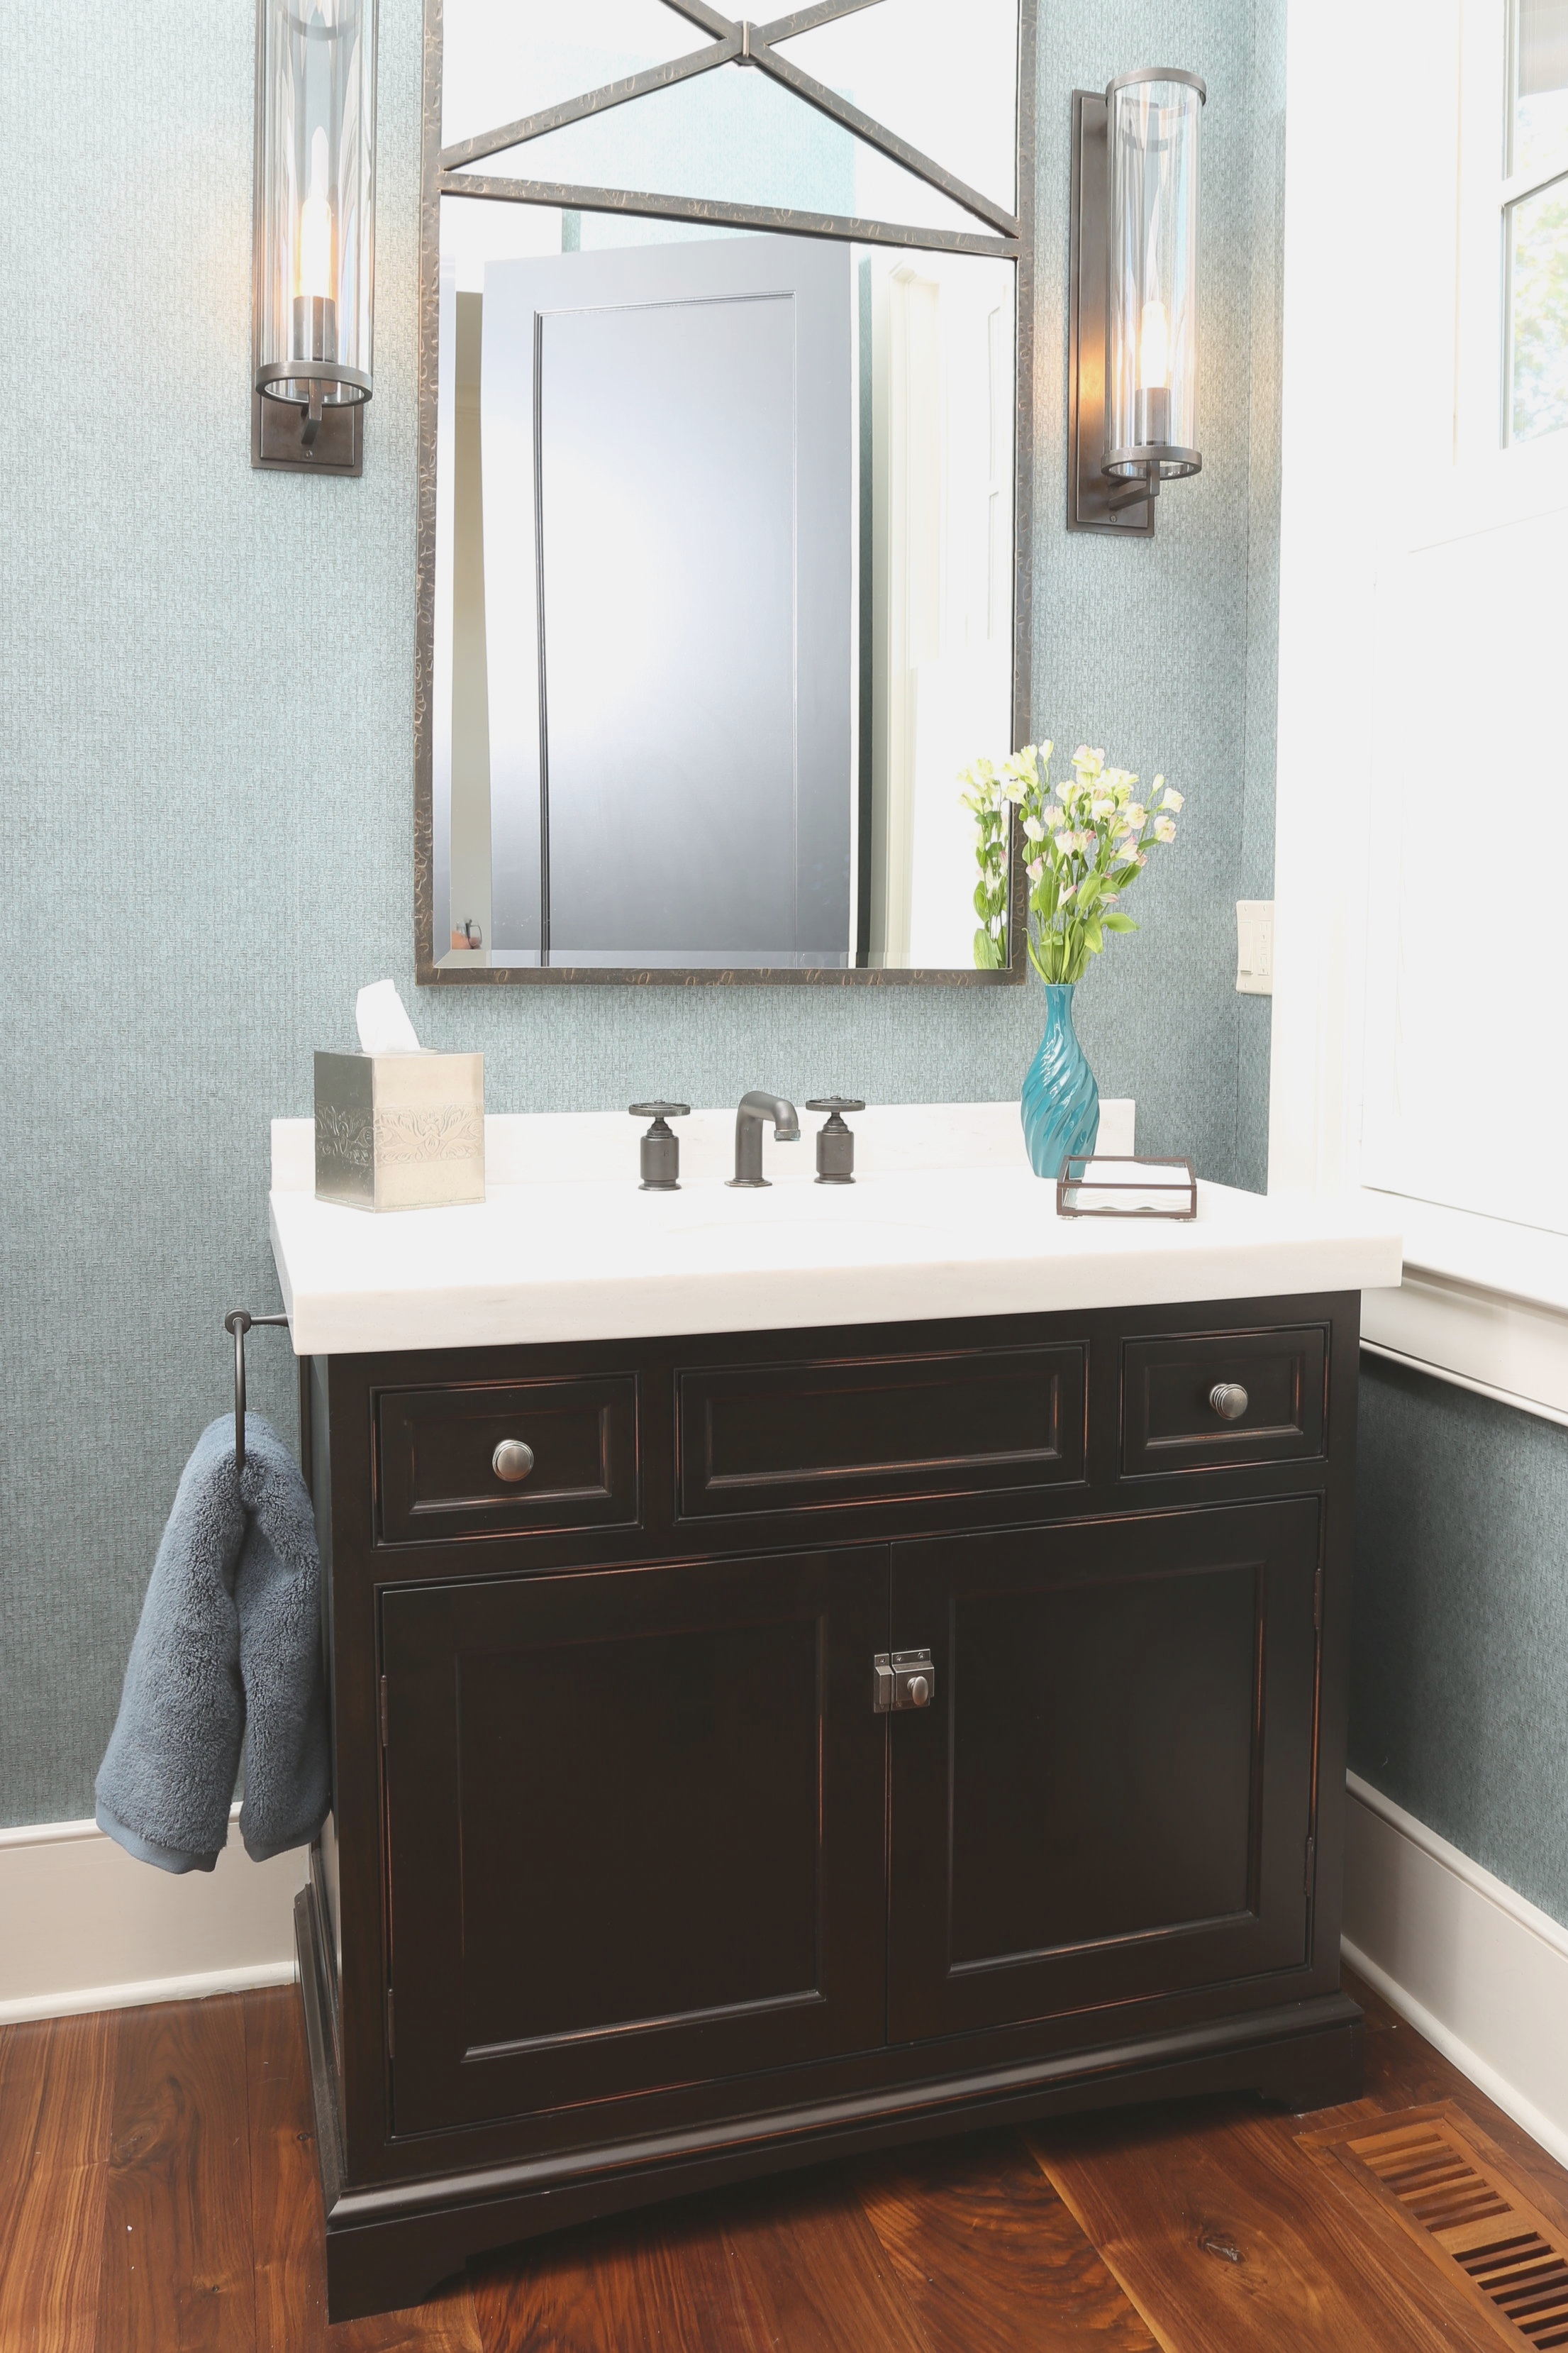 Powder Room - A custom vanity can serve a power room with style, efficiency, and storage despite the small footprint of room.